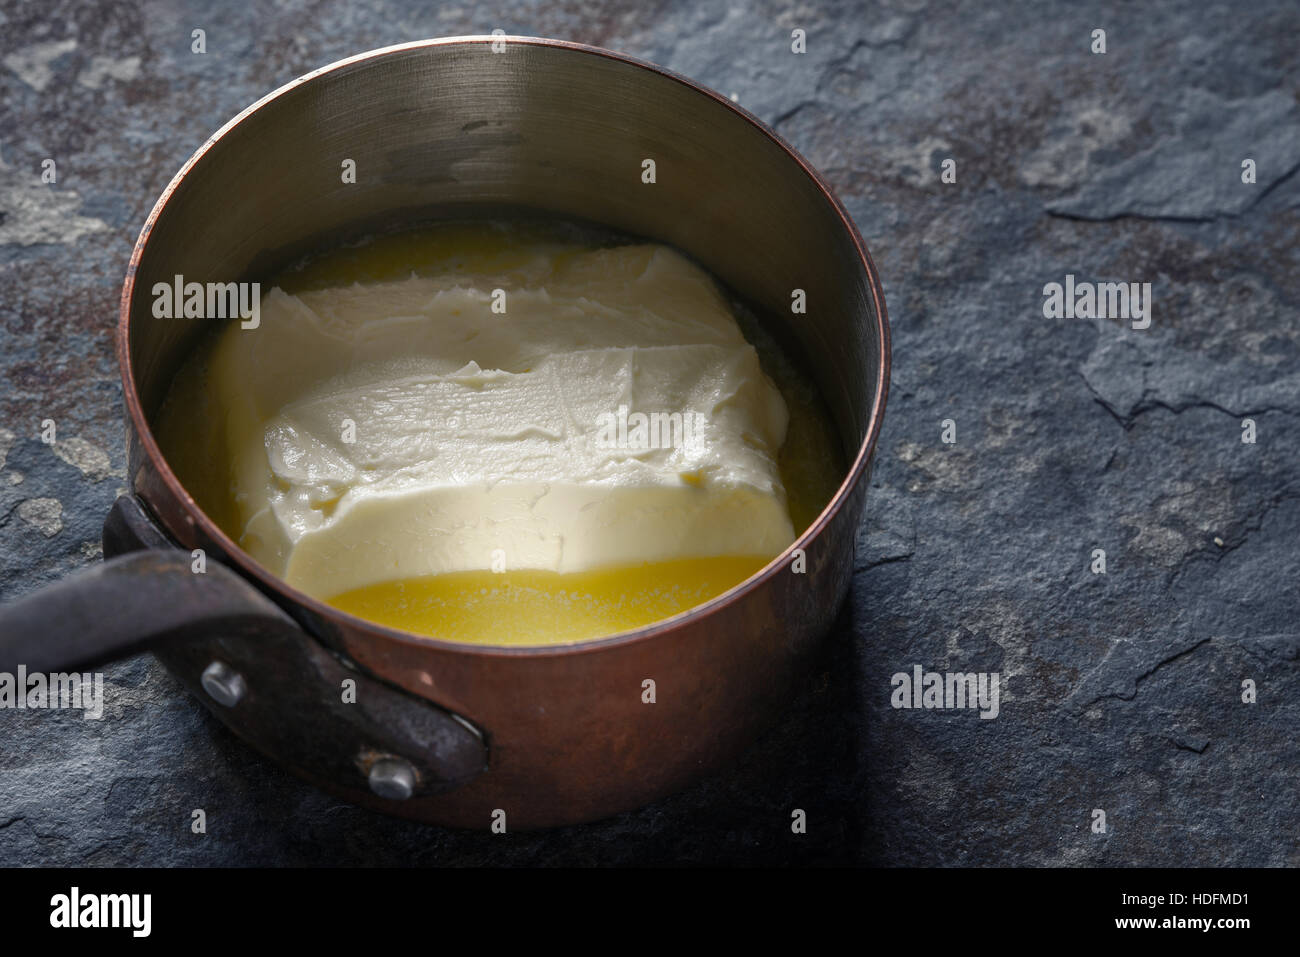 Melted butter in the stewpan on the stone background horizontal - Stock Image